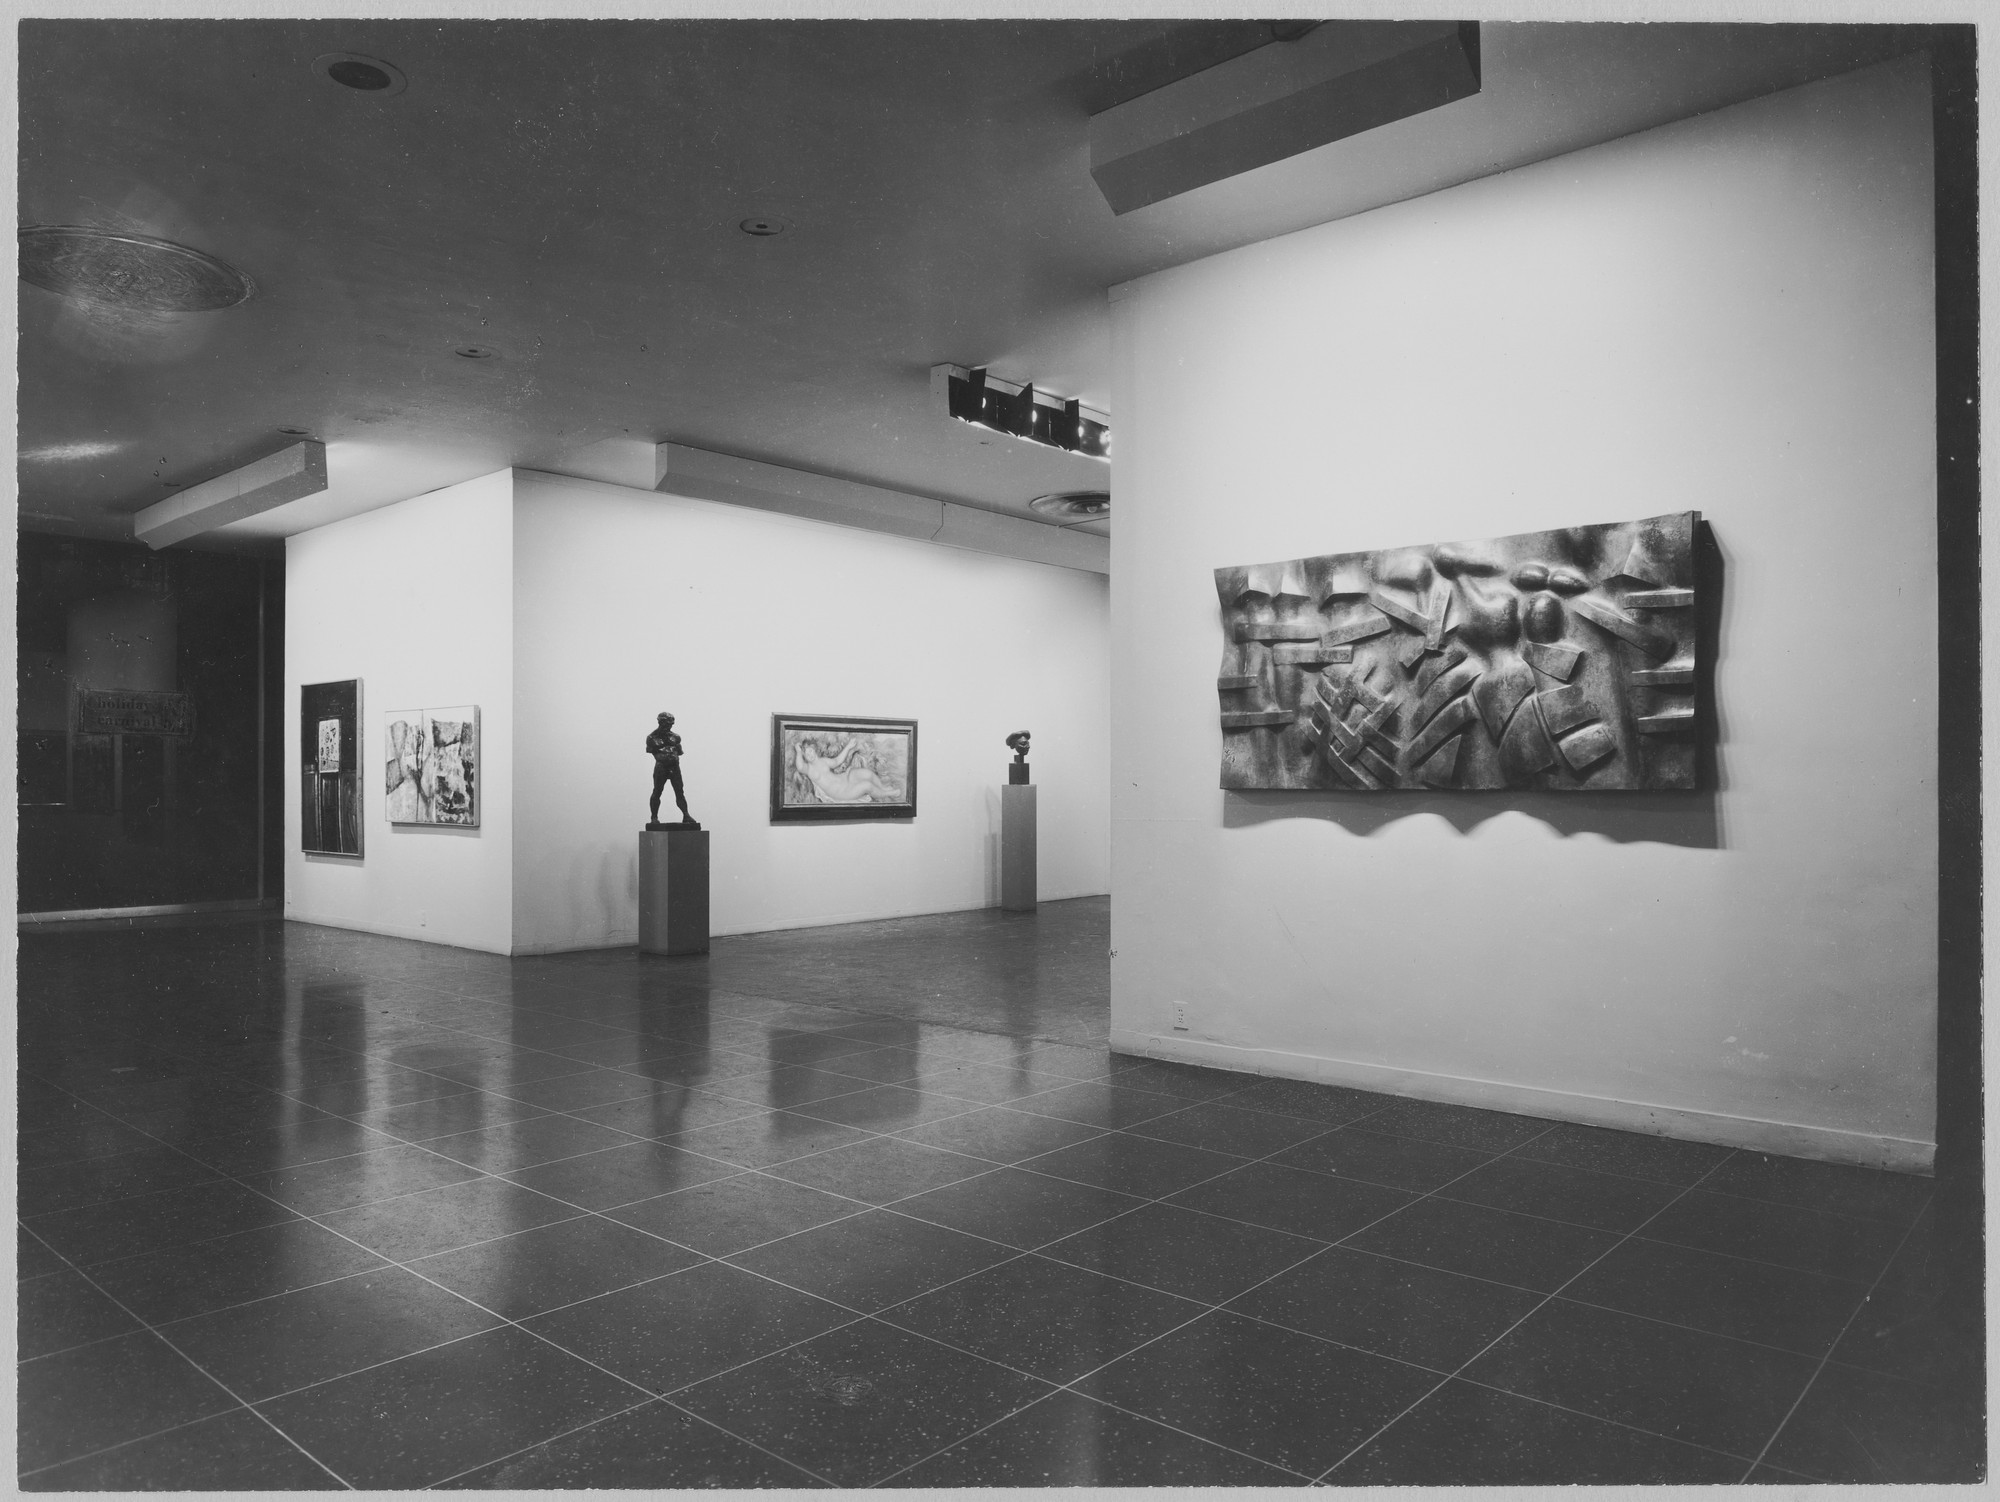 "Installation view of the exhibition, ""Recent European Acquisitions (Painting and Sculpture)."" November 28, 1956–January 13, 1957. Photographic Archive. The Museum of Modern Art Archives, New York. IN609.1. Photograph by Soichi Sunami."